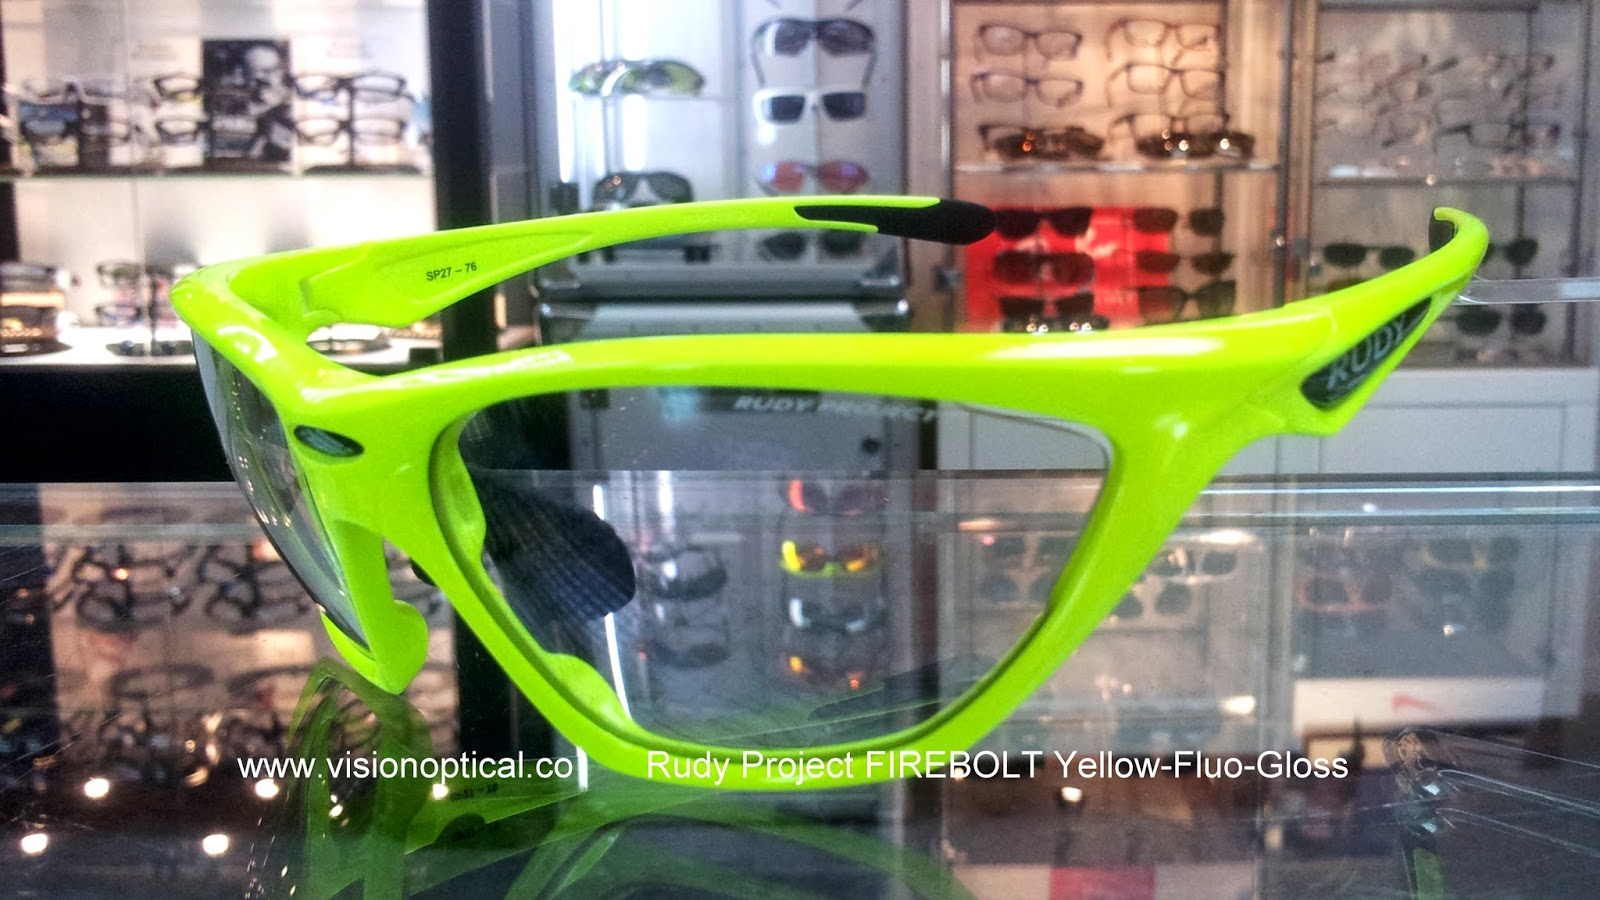 Rudy Project Firebolt Yellow Fluo Photoclear 太陽眼鏡